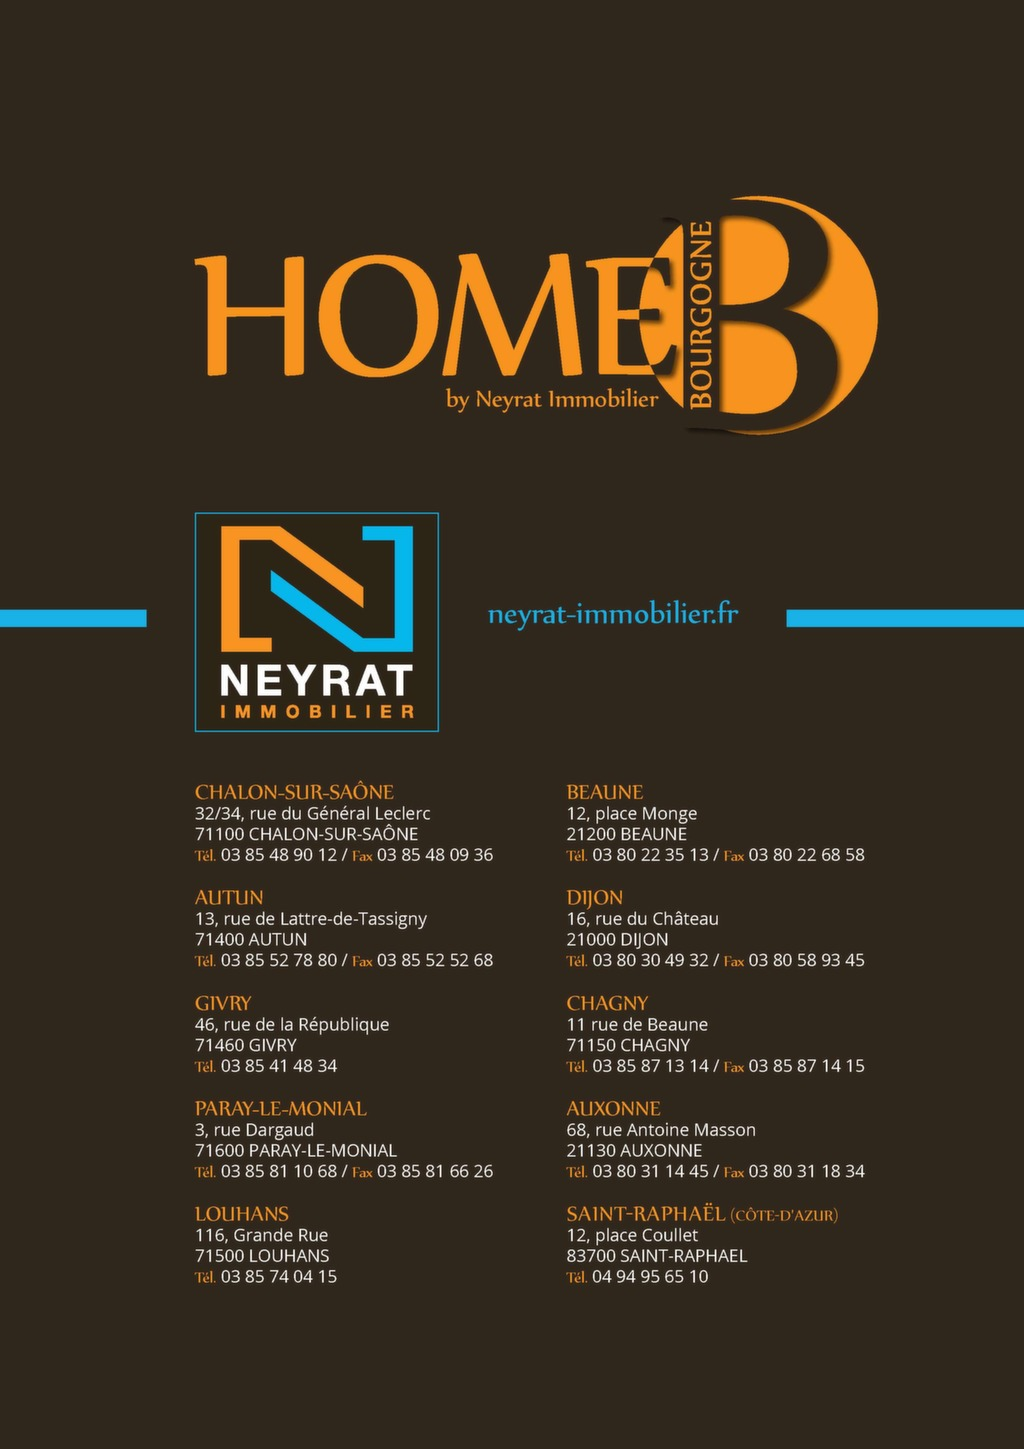 Cabinet Neyrat Dijon Home B By Neyrat Immmobilier Magazine Immo